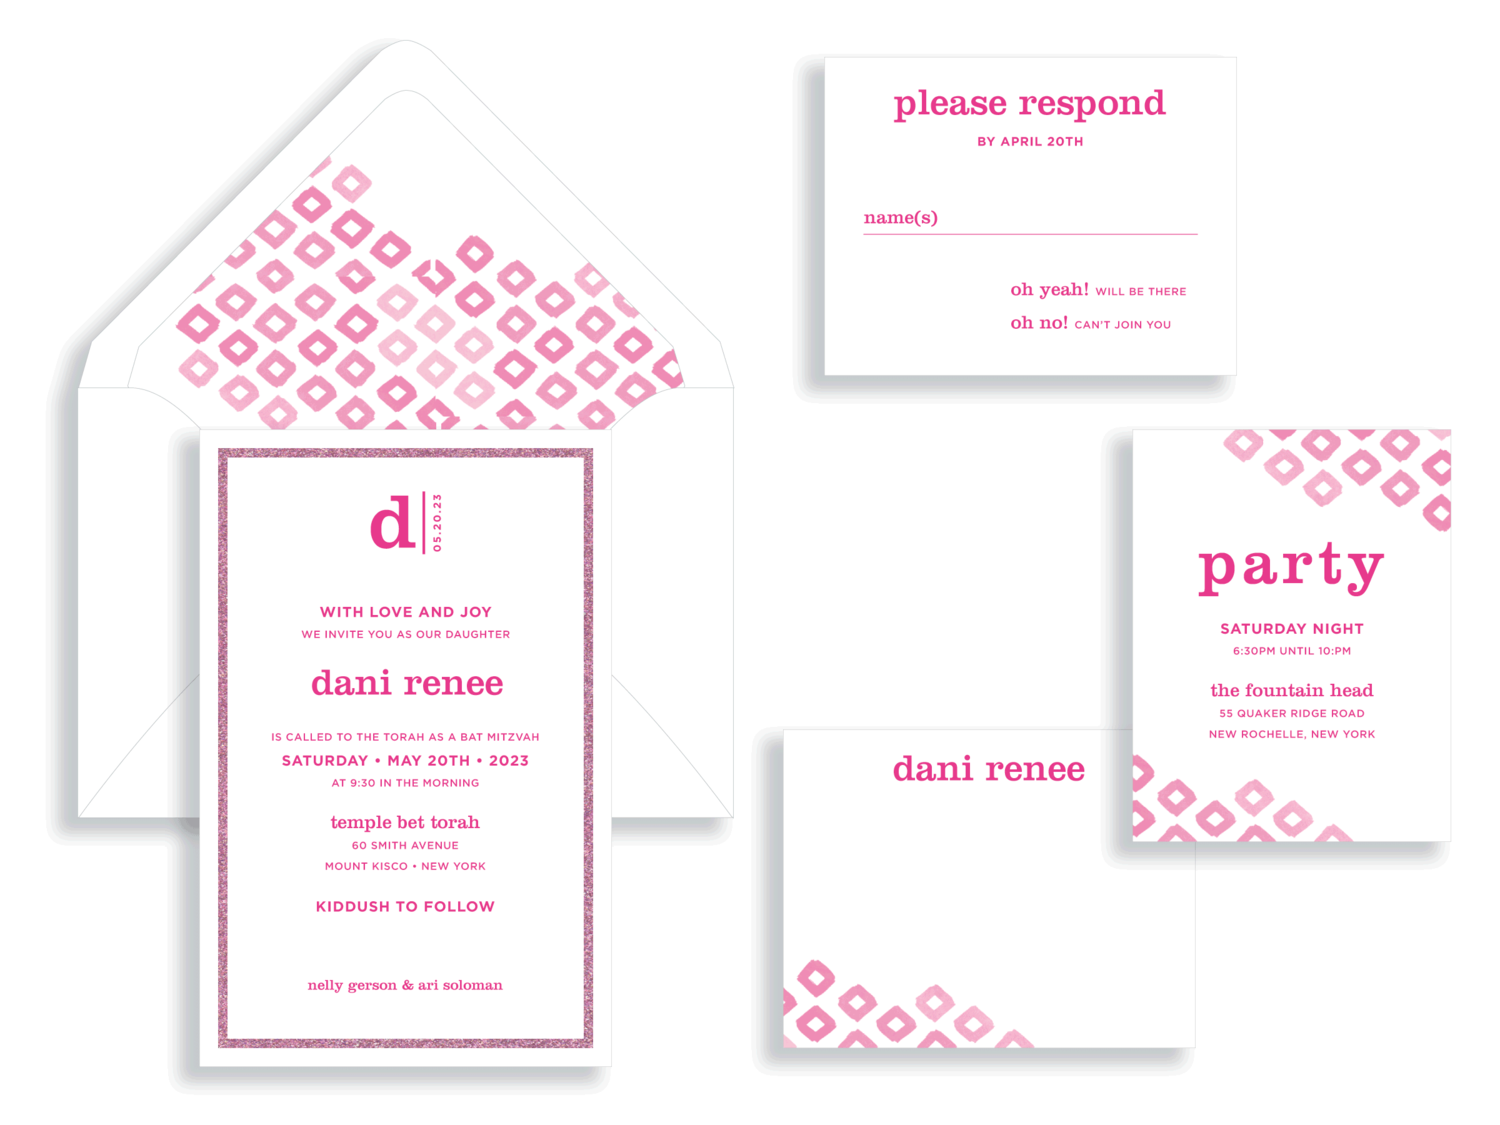 Dani magenta and pink glitter ikat bat mitzvah invitation in the Washington DC Metro area from Staccato.  Customize colors and layers!